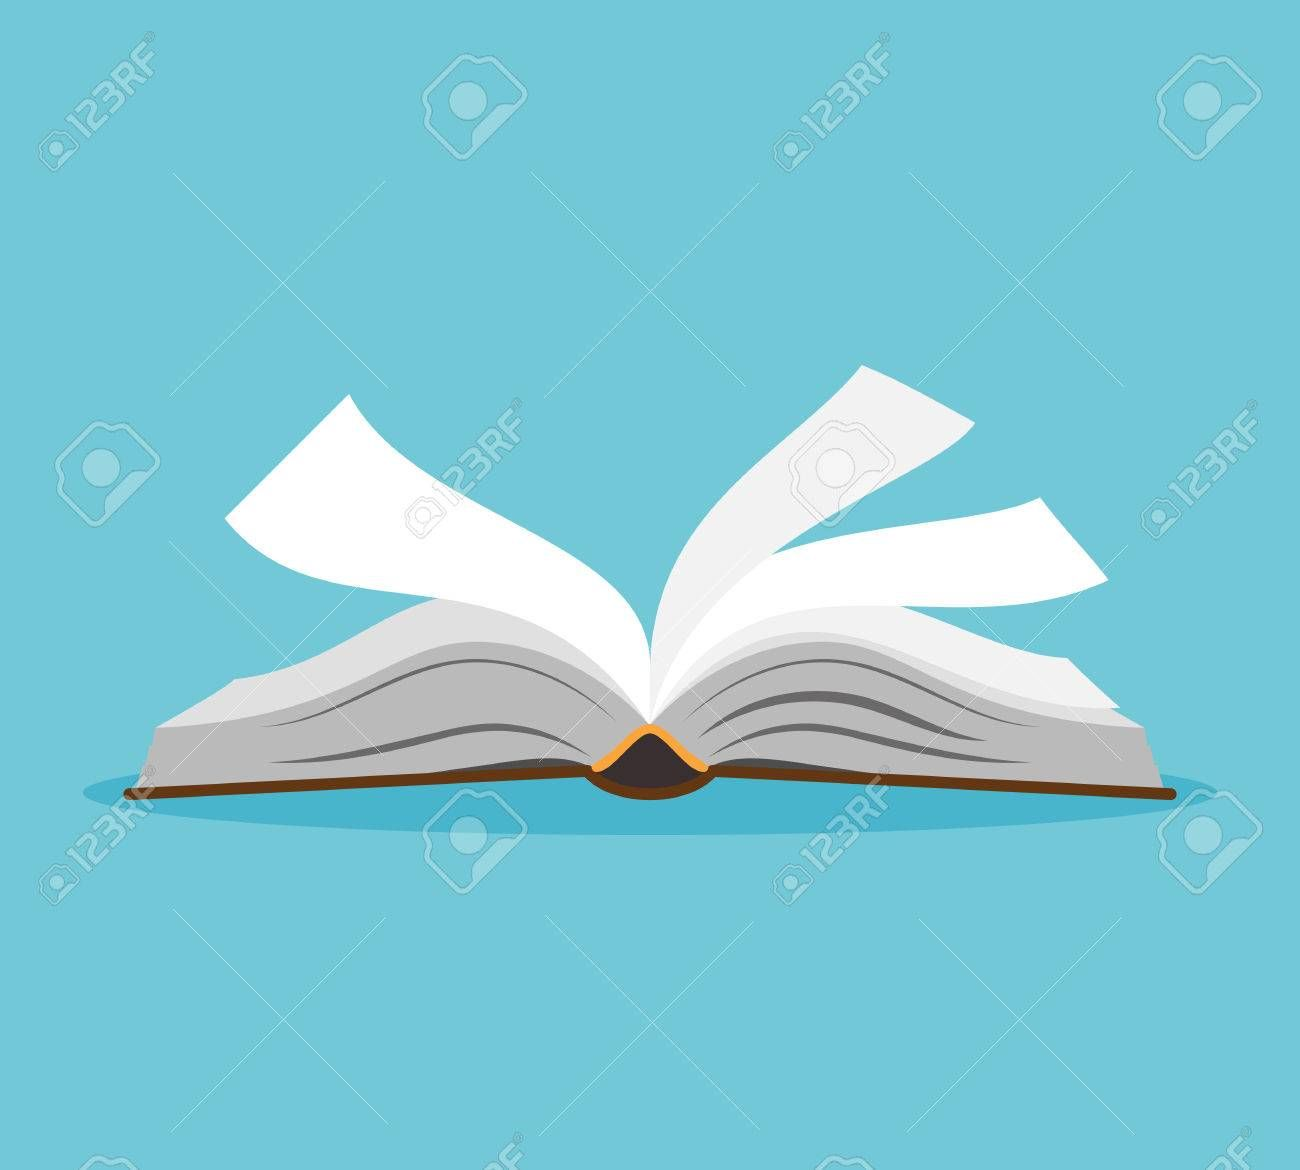 Opened Book Illustration Open Book With Pages Fluttering Vector Illustration Ad Illustration Book Op Book Illustration Open Book Vector Illustration